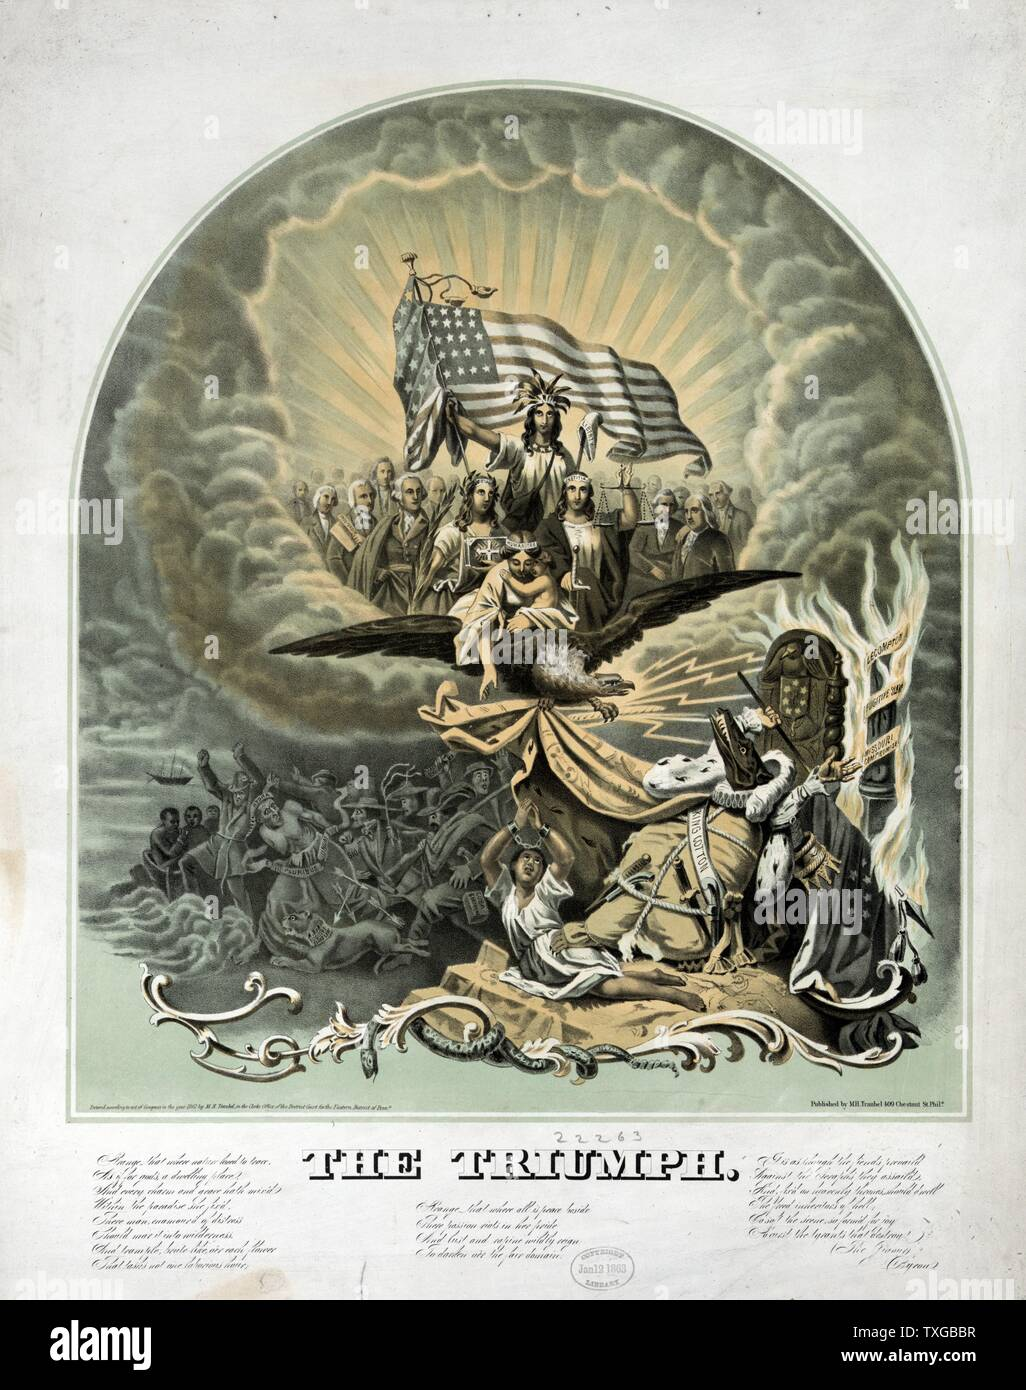 American Civil War allegory: Triumph by Morris Traubel, 1820-1897.Published c1861: A large, elaborate allegory predicting the triumph of the Union over the dark forces of the Confederacy and King Cotton. A published key accompanying the print describes the secession of the South in heavily moralistic terms, as the workings of an insidious Hydra of human discord, spawner of treachery and rebellion - Stock Image